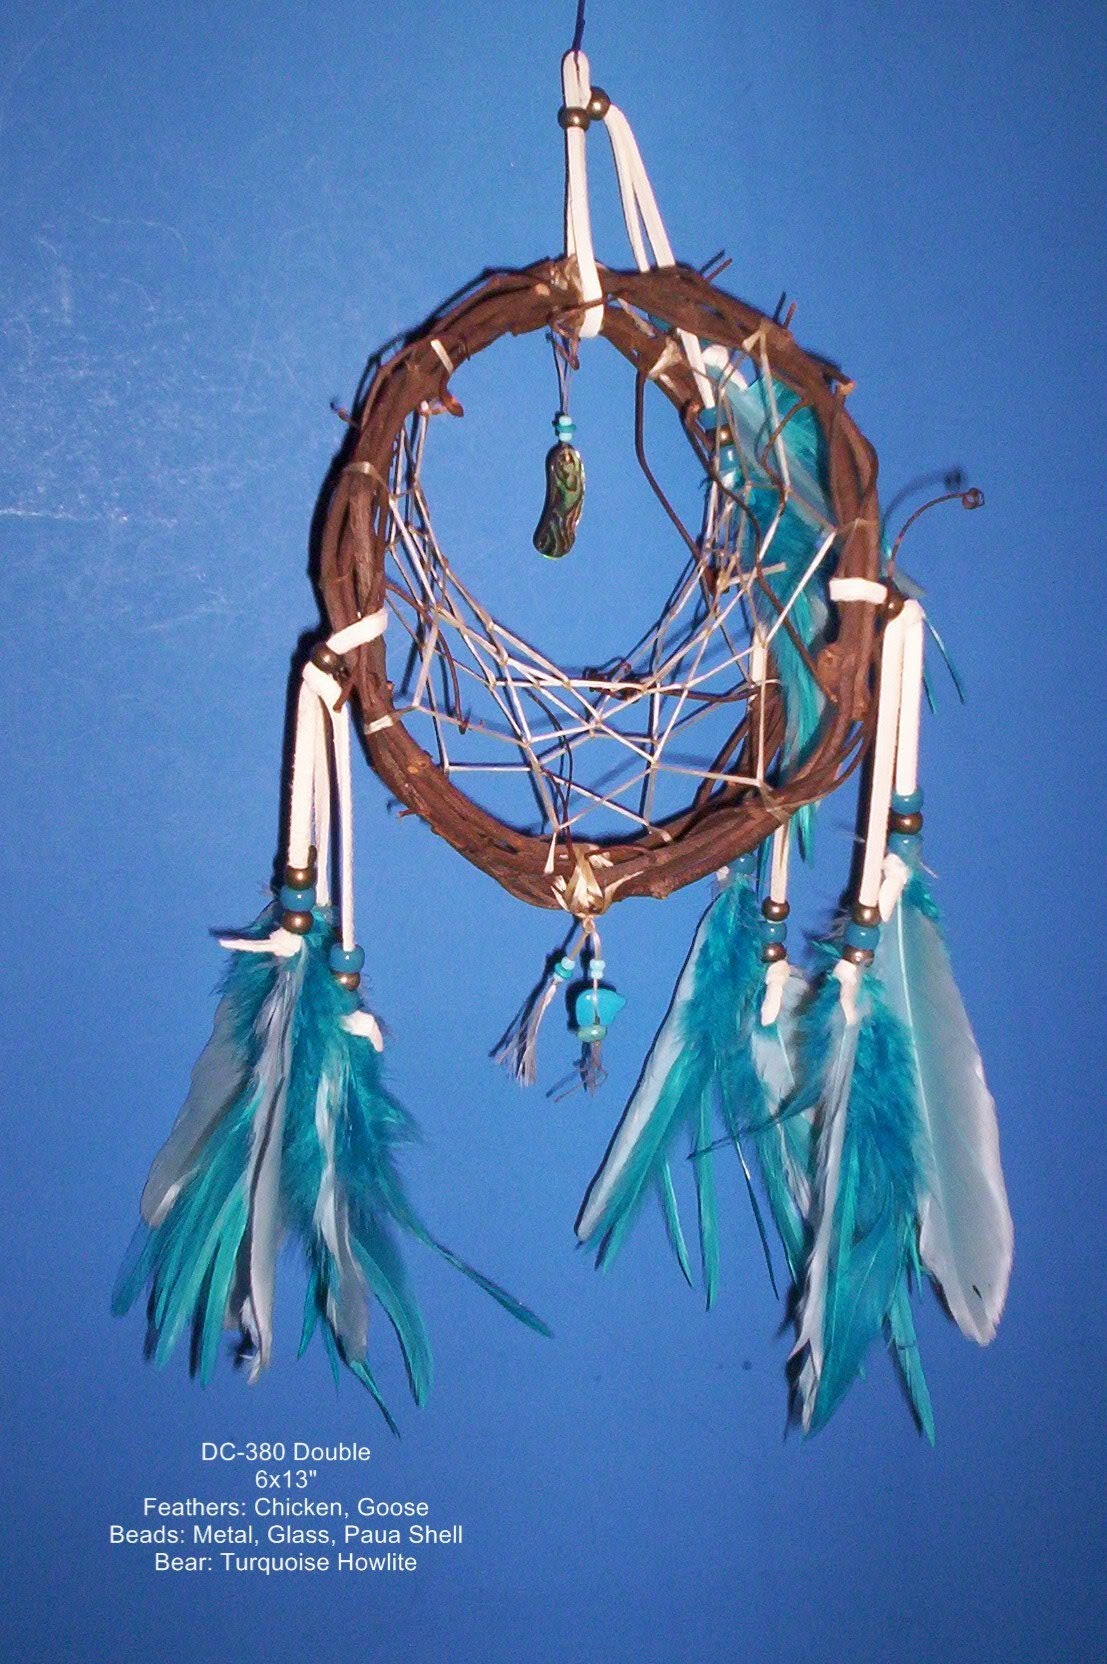 Double ring dream catcher grapevine metal glass by for How to make a double ring dreamcatcher